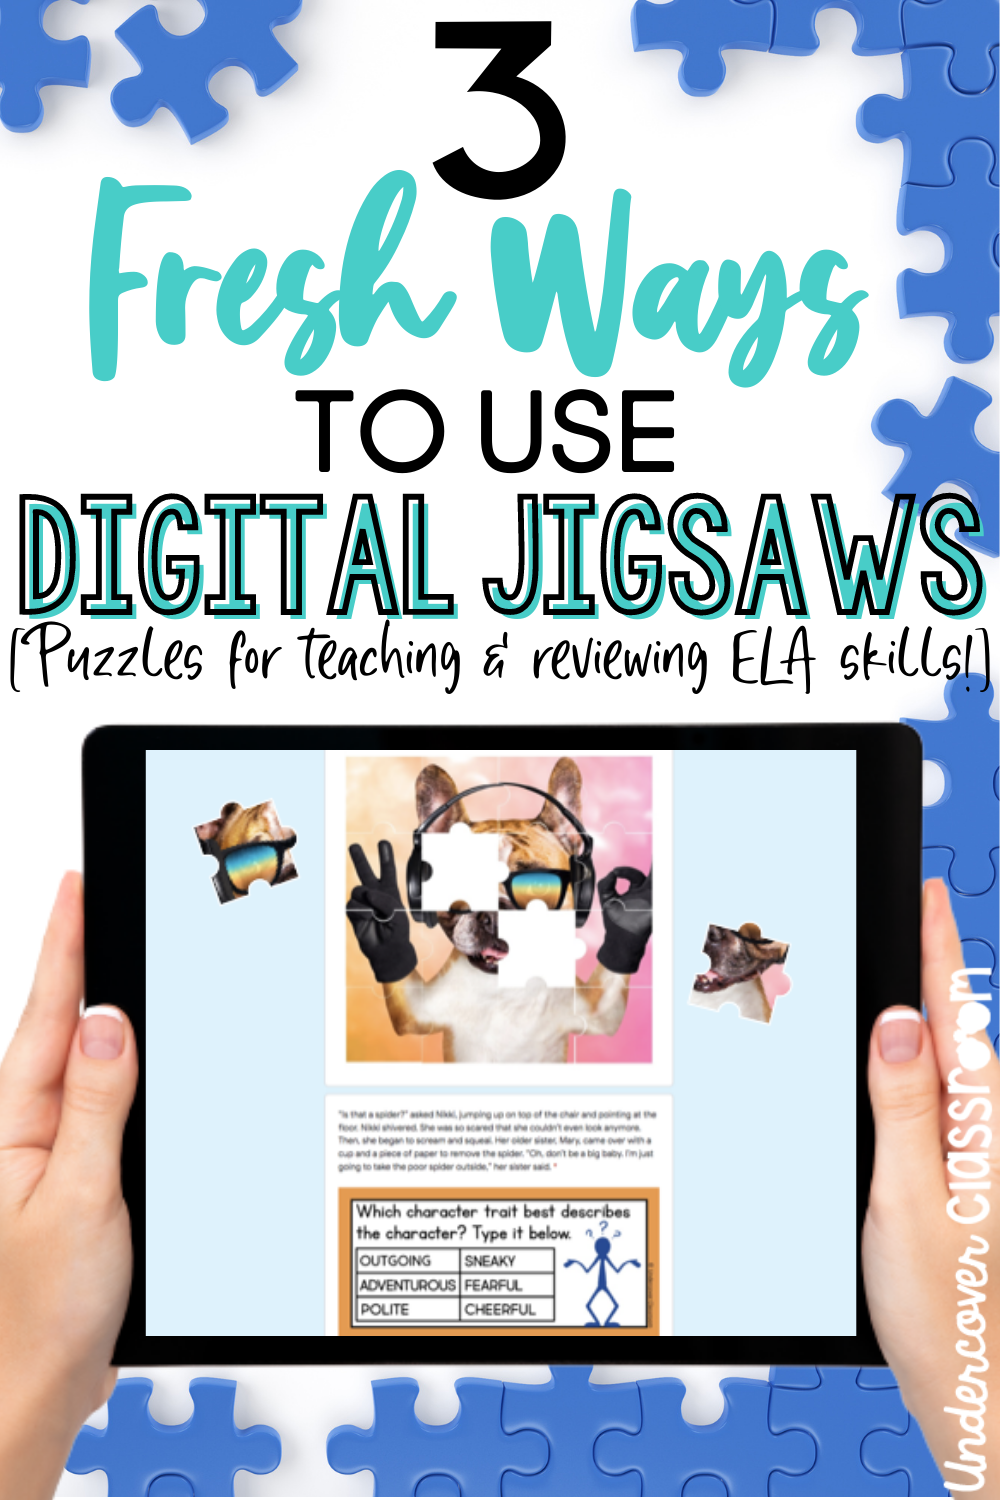 Use digital jigsaw puzzles to teach students reading and ELA skills.